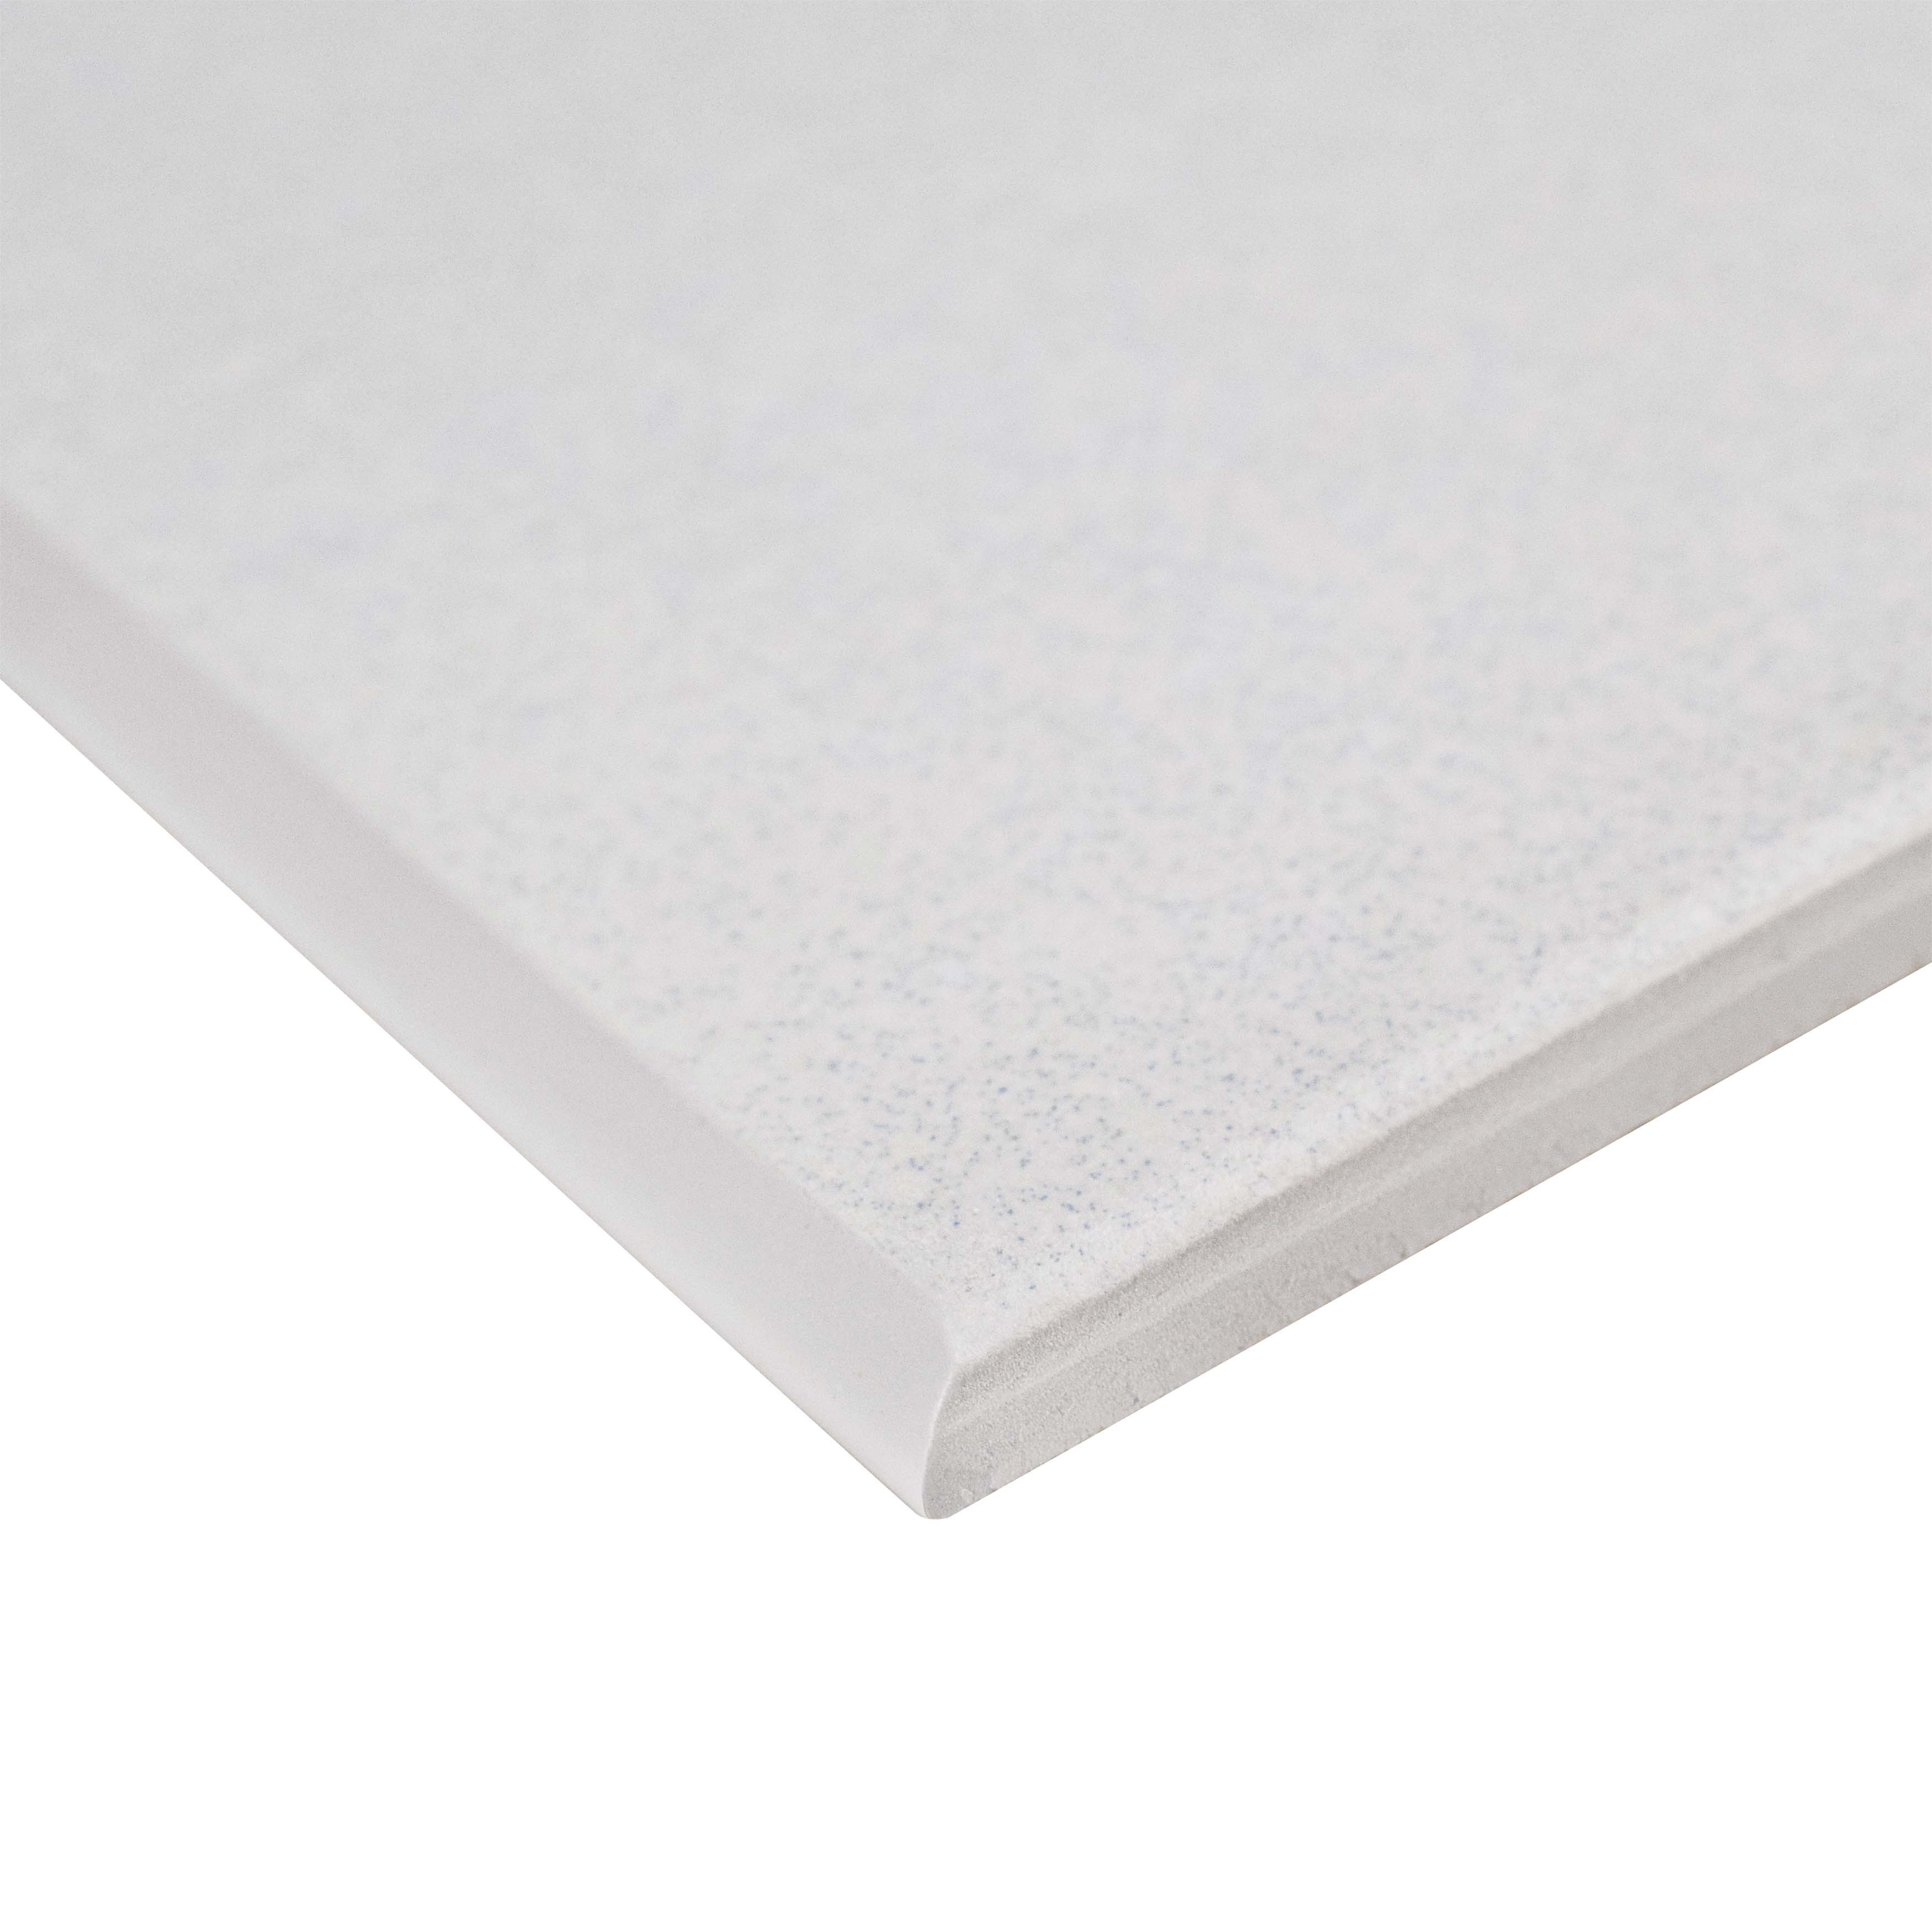 Somertile 3 5x7 75 Inch Thirties White Ceramic Bullnose Floor And Wall Trim Tile 5 Tiles Free Shipping On Orders Over 45